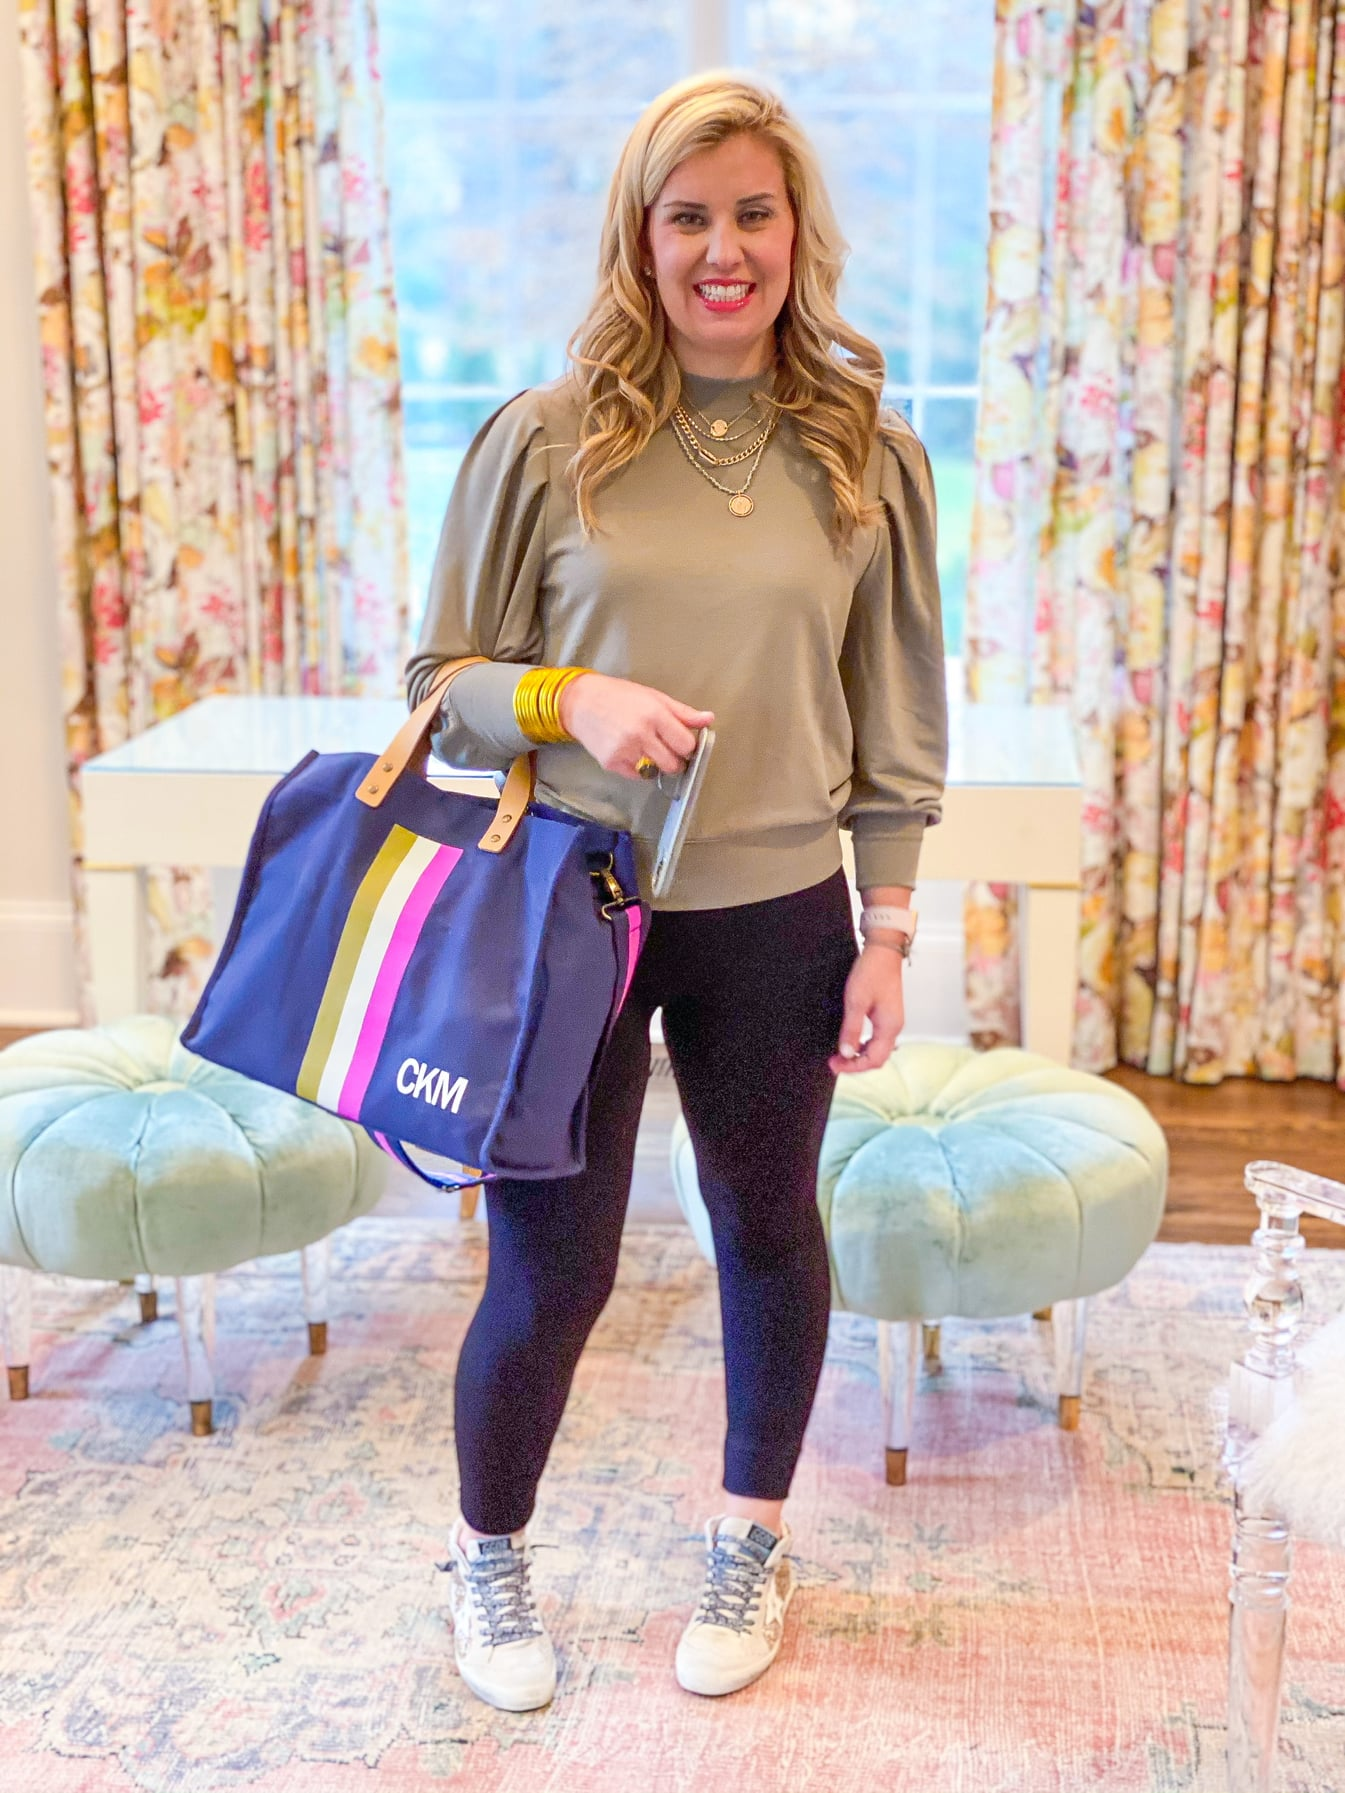 Brentwood Legging with Sweatshirt by Good Hart worn by Catherine Martin